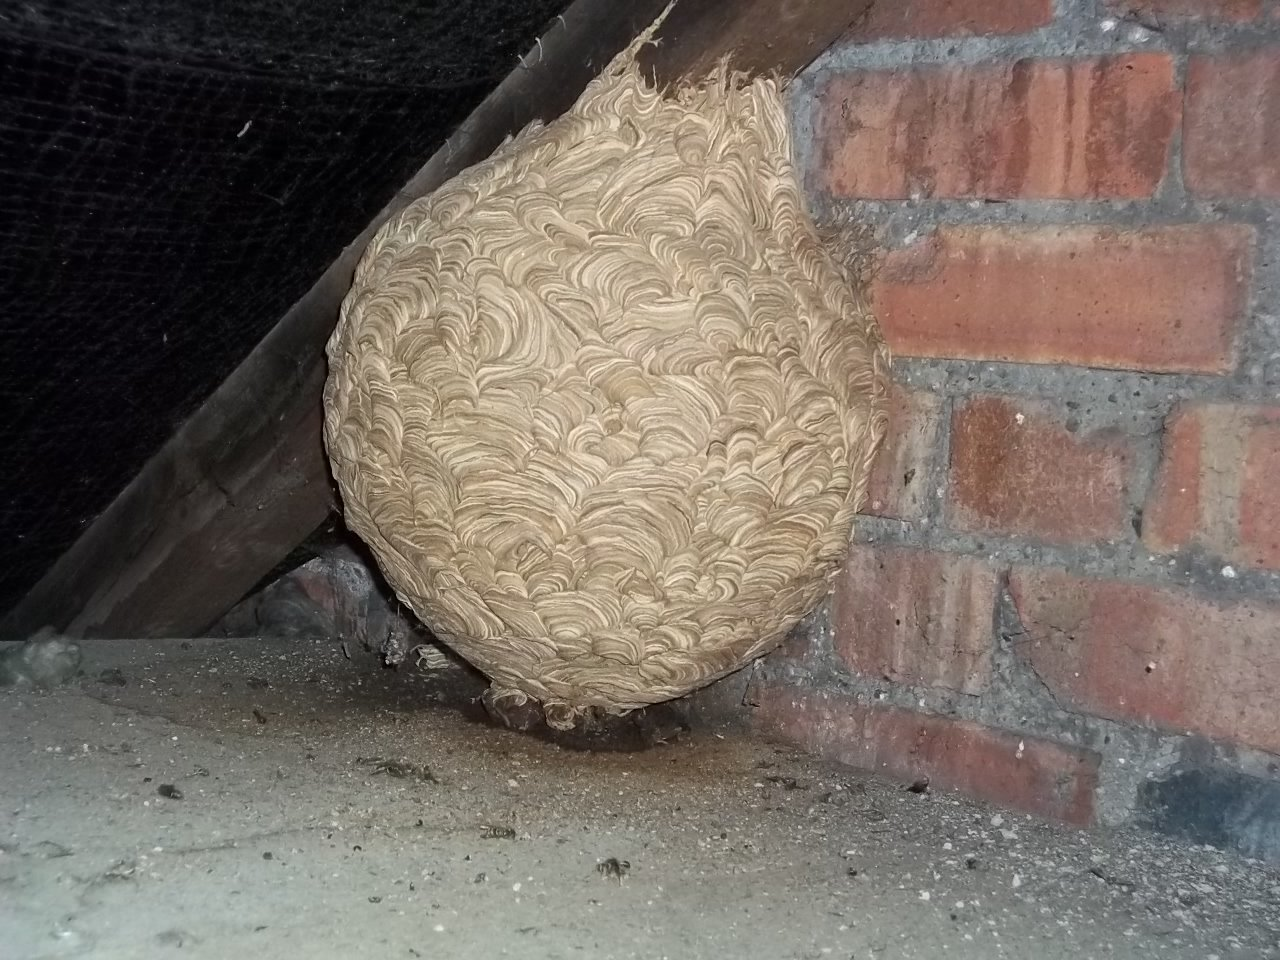 Pest Control In Swindon And Wiltshire - Professional Pest Control Solutions